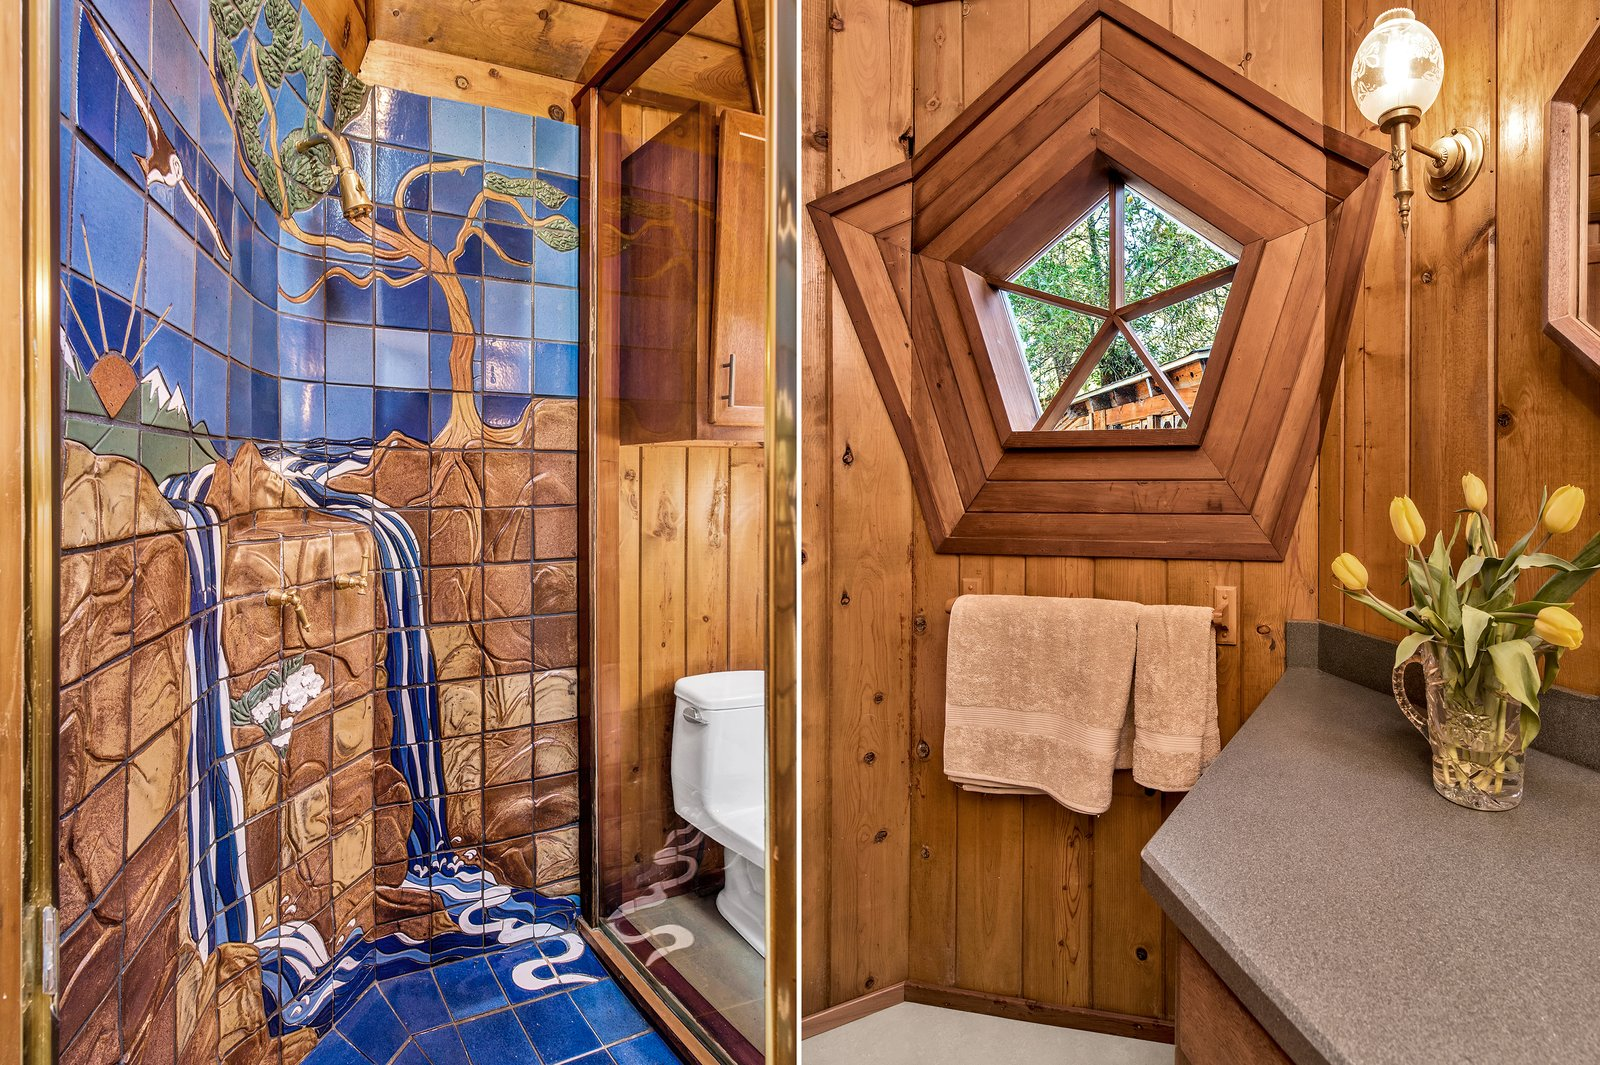 Bath, Wall, Mosaic Tile, One Piece, Enclosed, Laminate, and Porcelain Tile The custom tile work in the shower.  Bath Mosaic Tile One Piece Enclosed Photos from A Geodesic Getaway in Northern California Asks $475K